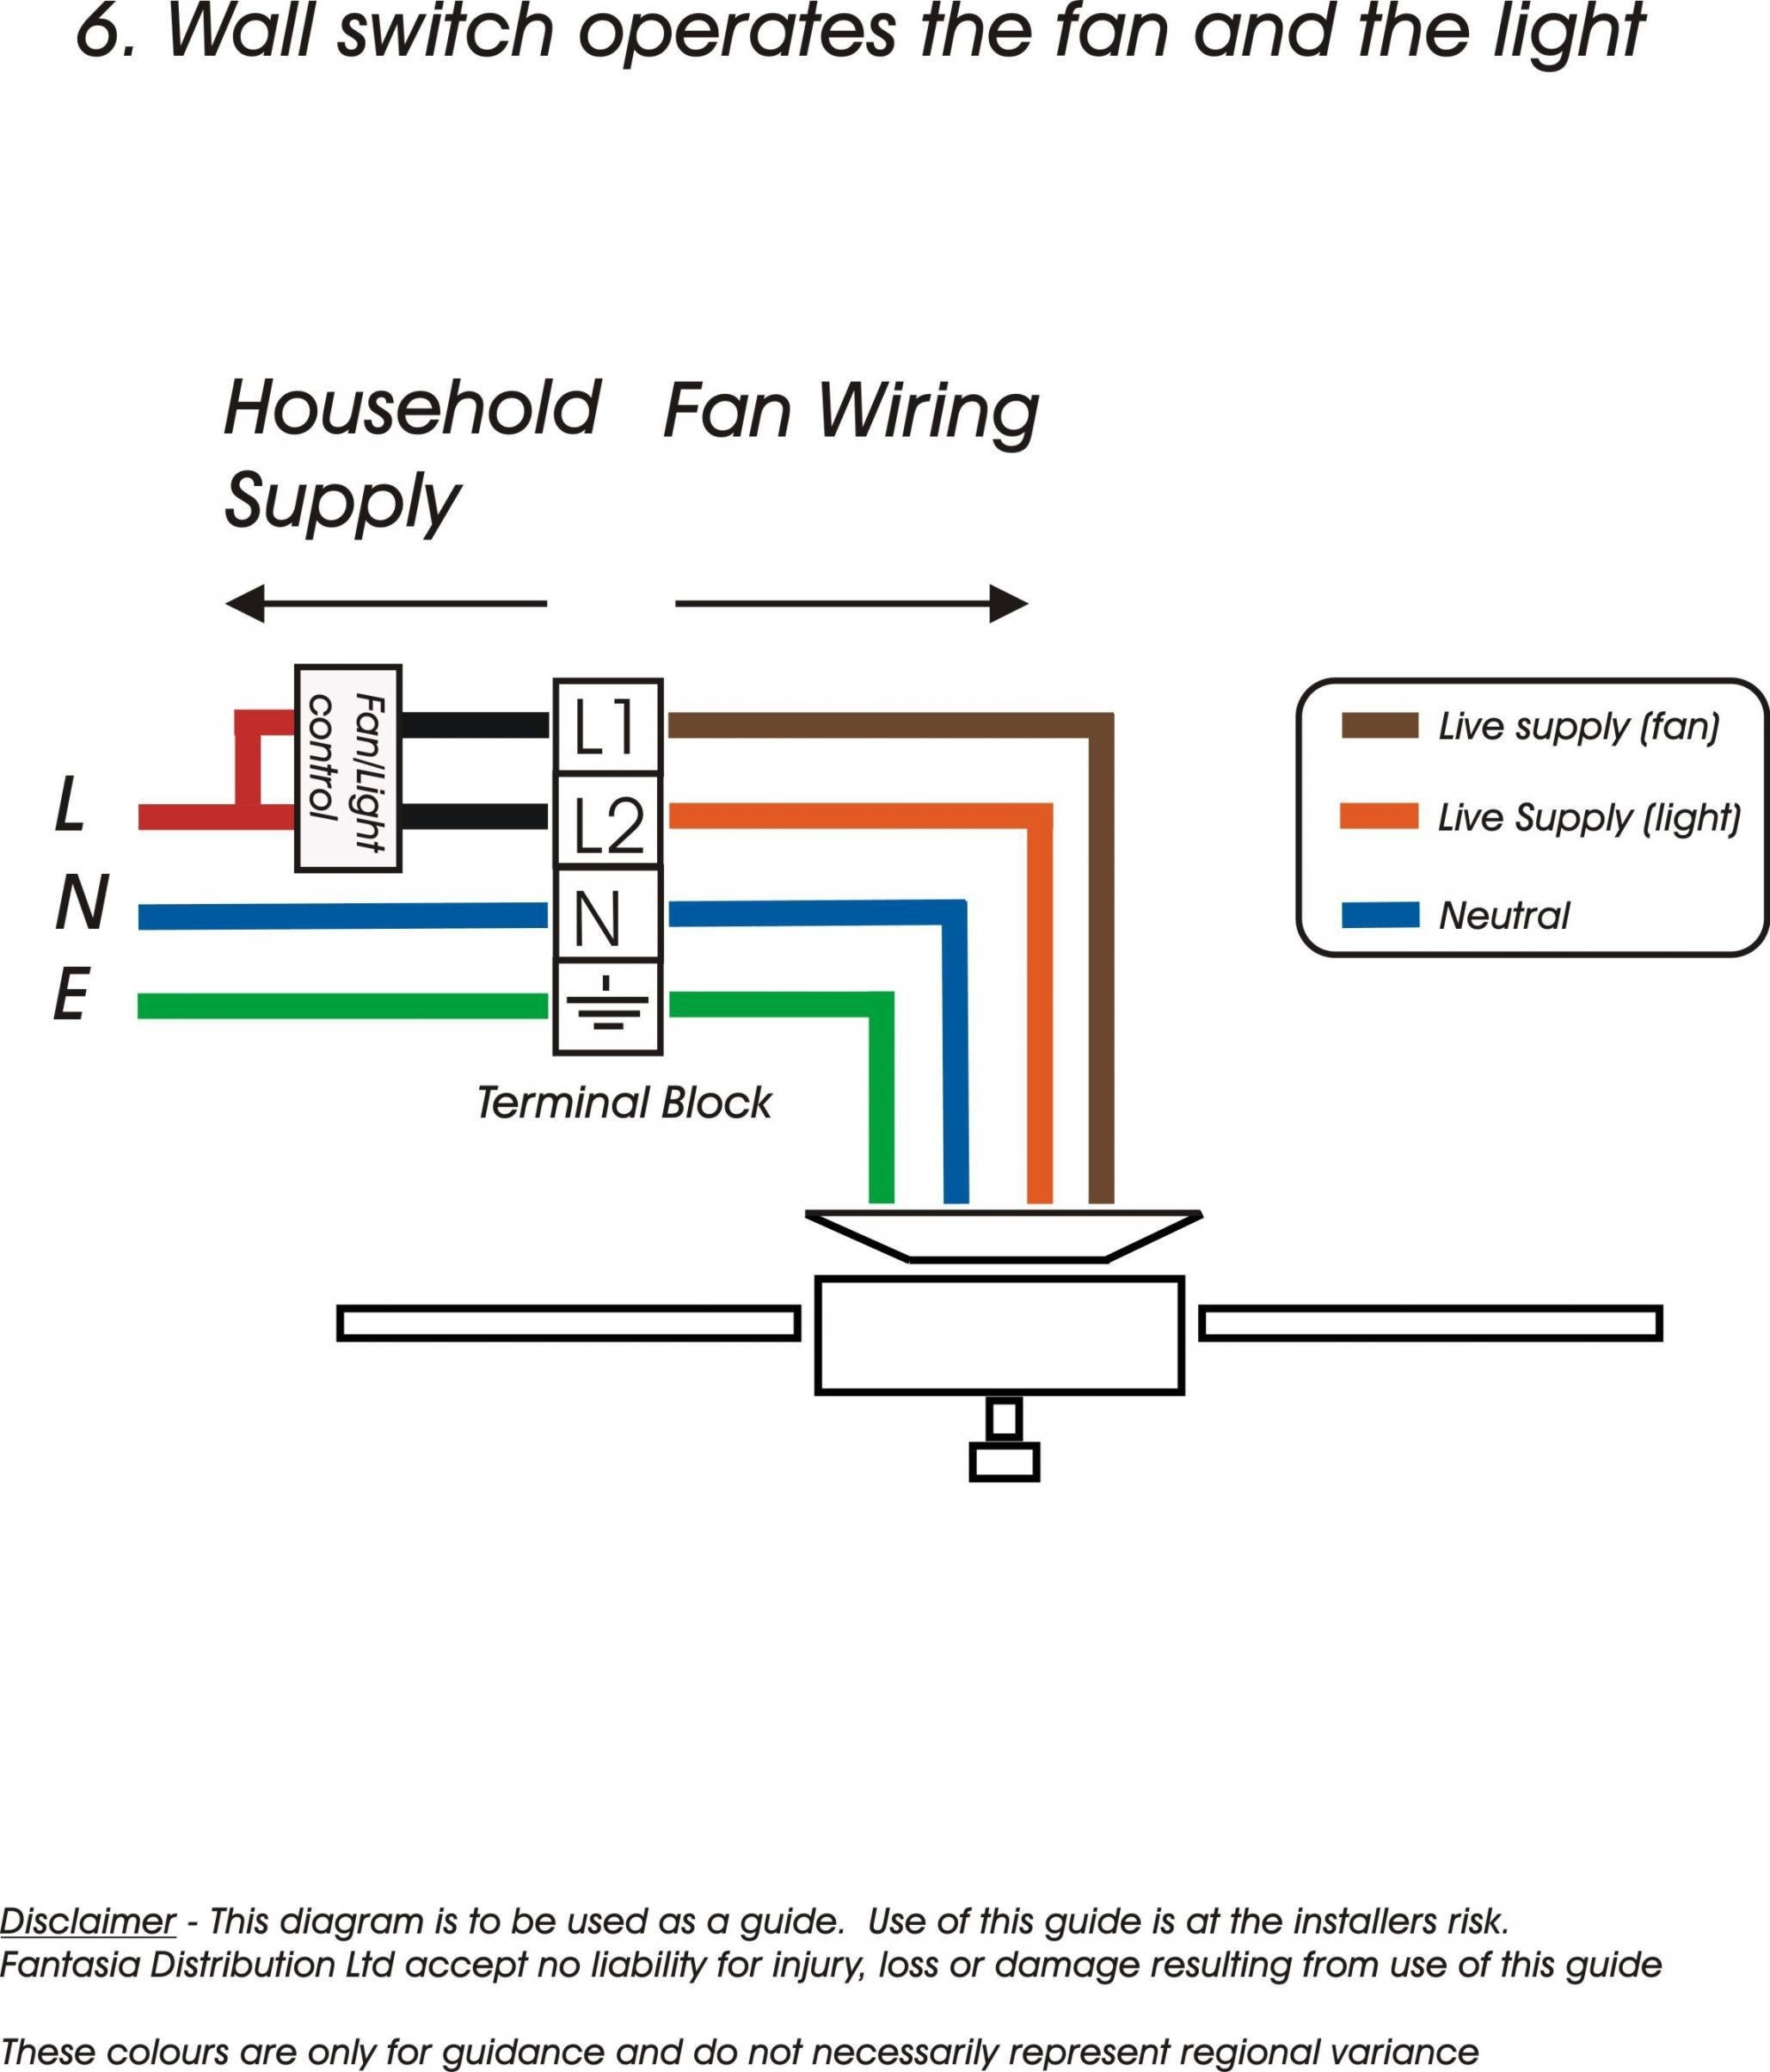 flex a lite fan controller wiring diagram Collection-Wiring Diagram Fan Relay Switch New Lighthouse Fan Wiring Diagram Wiring Diagram • 6-a